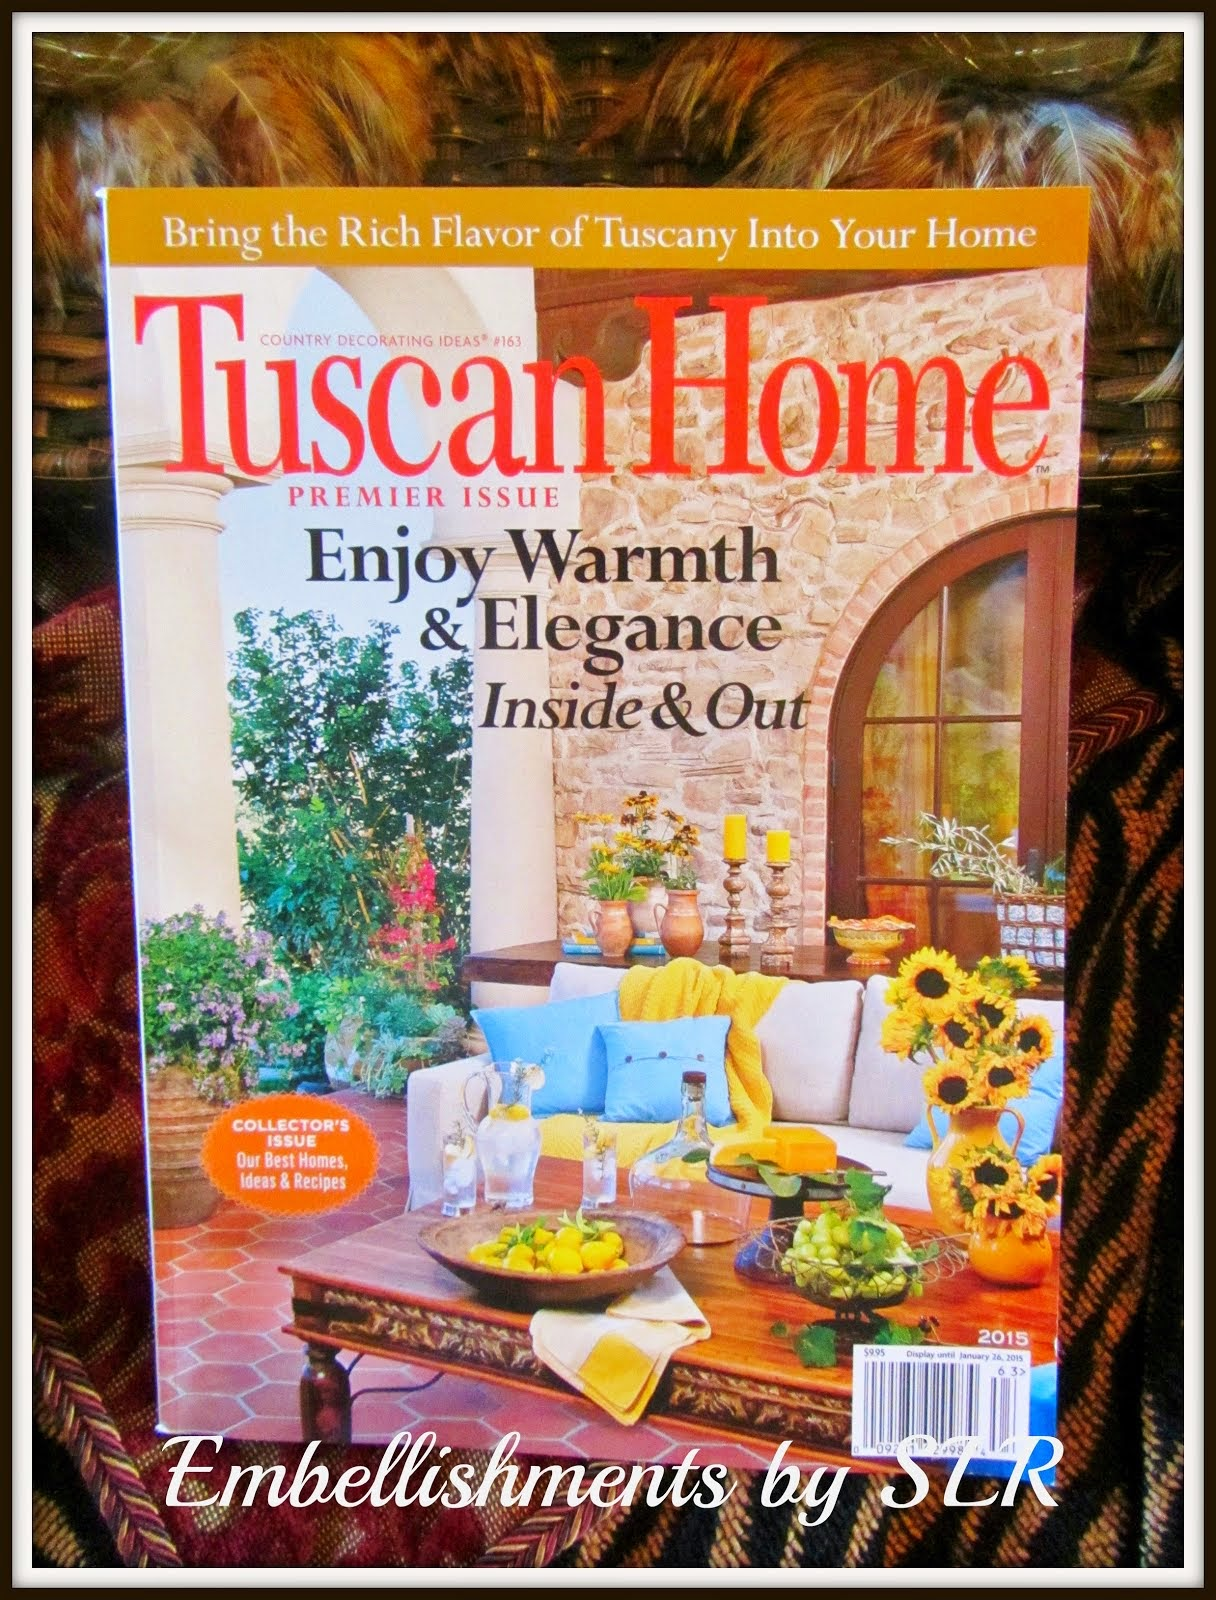 So honored to have our home featured In the premiere issue of Tuscan Home. Click to take a peek!